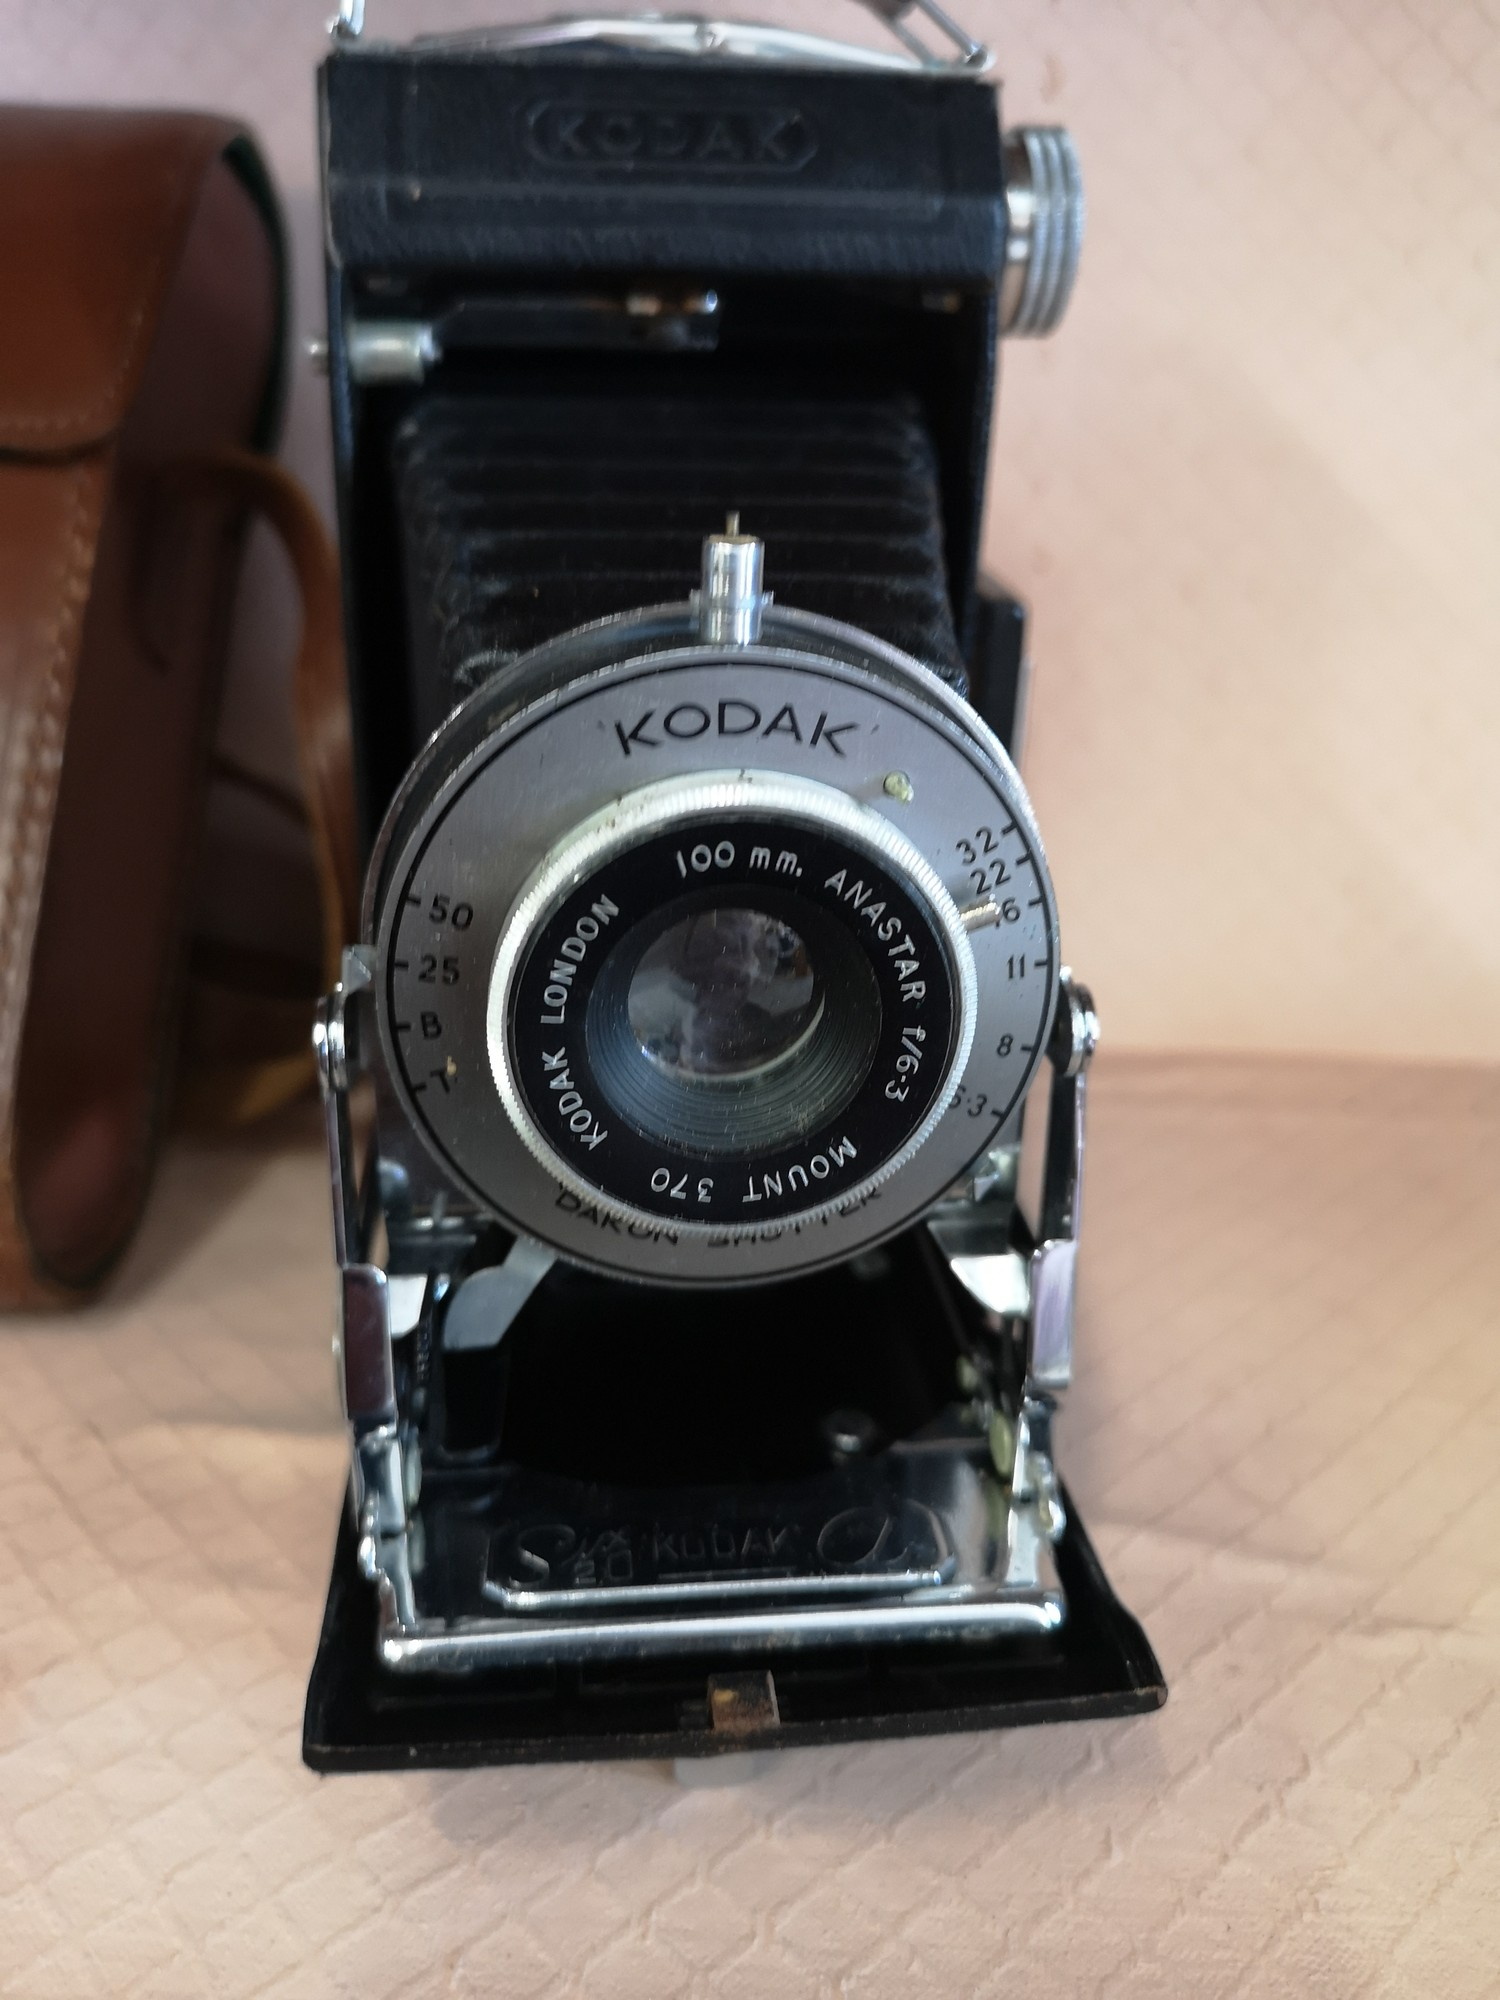 Kodak London bellows camera together with case. - Image 2 of 3